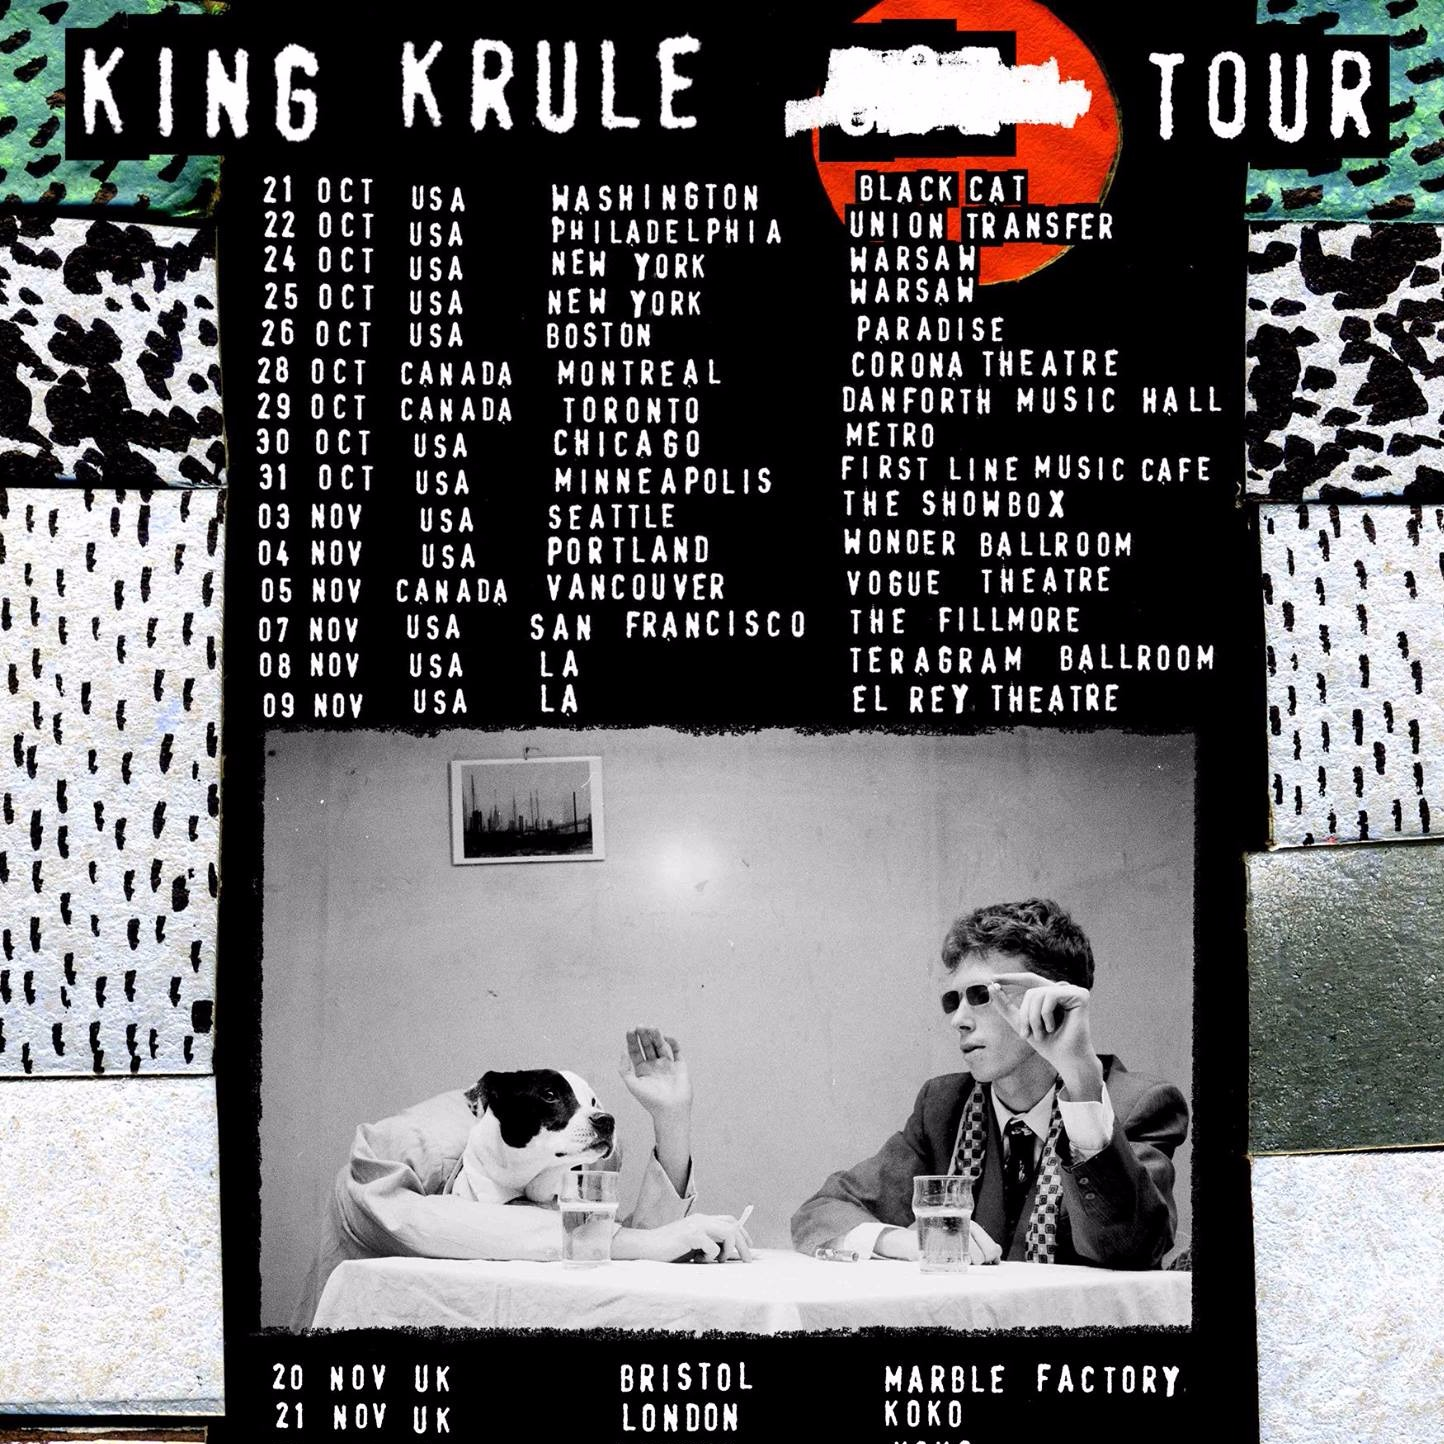 King Krule at Danforth Music Hall